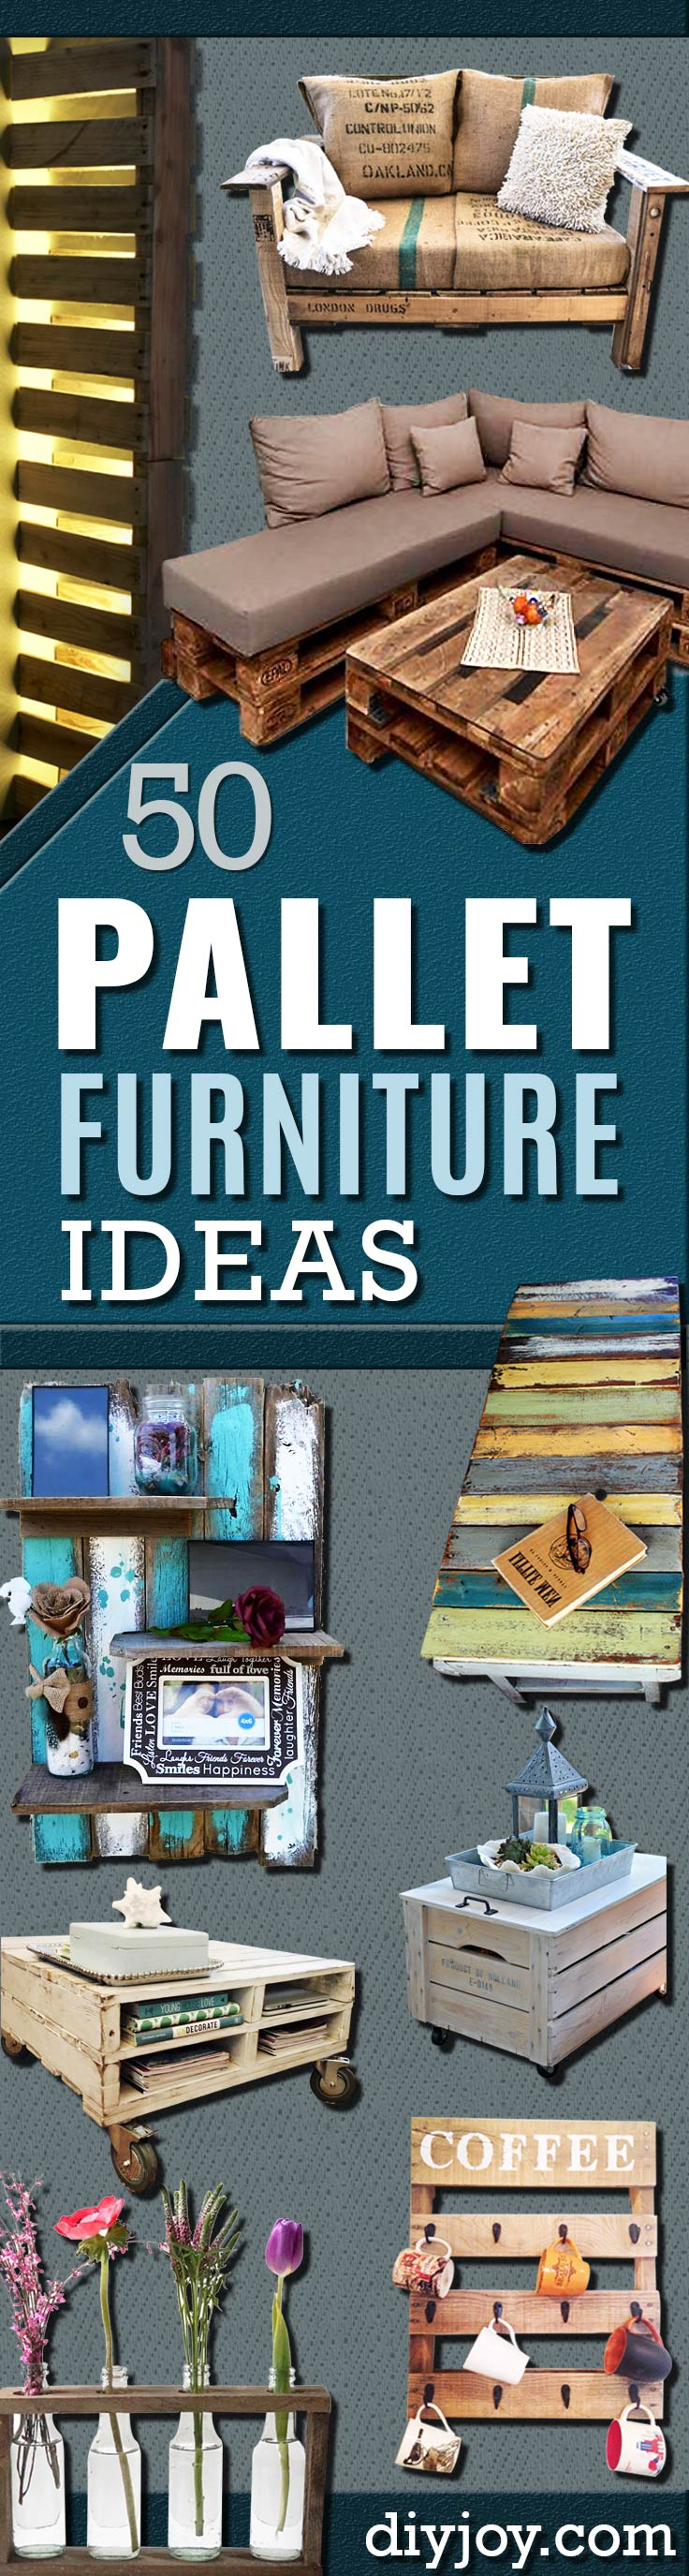 DIY Pallet Furniture Ideas - Best Do It Yourself Projects Made With Wooden Pallets - Indoor and Outdoor, Bedroom, Living Room, Patio. Coffee Table, Couch, Dining Tables, Shelves, Racks and Benches